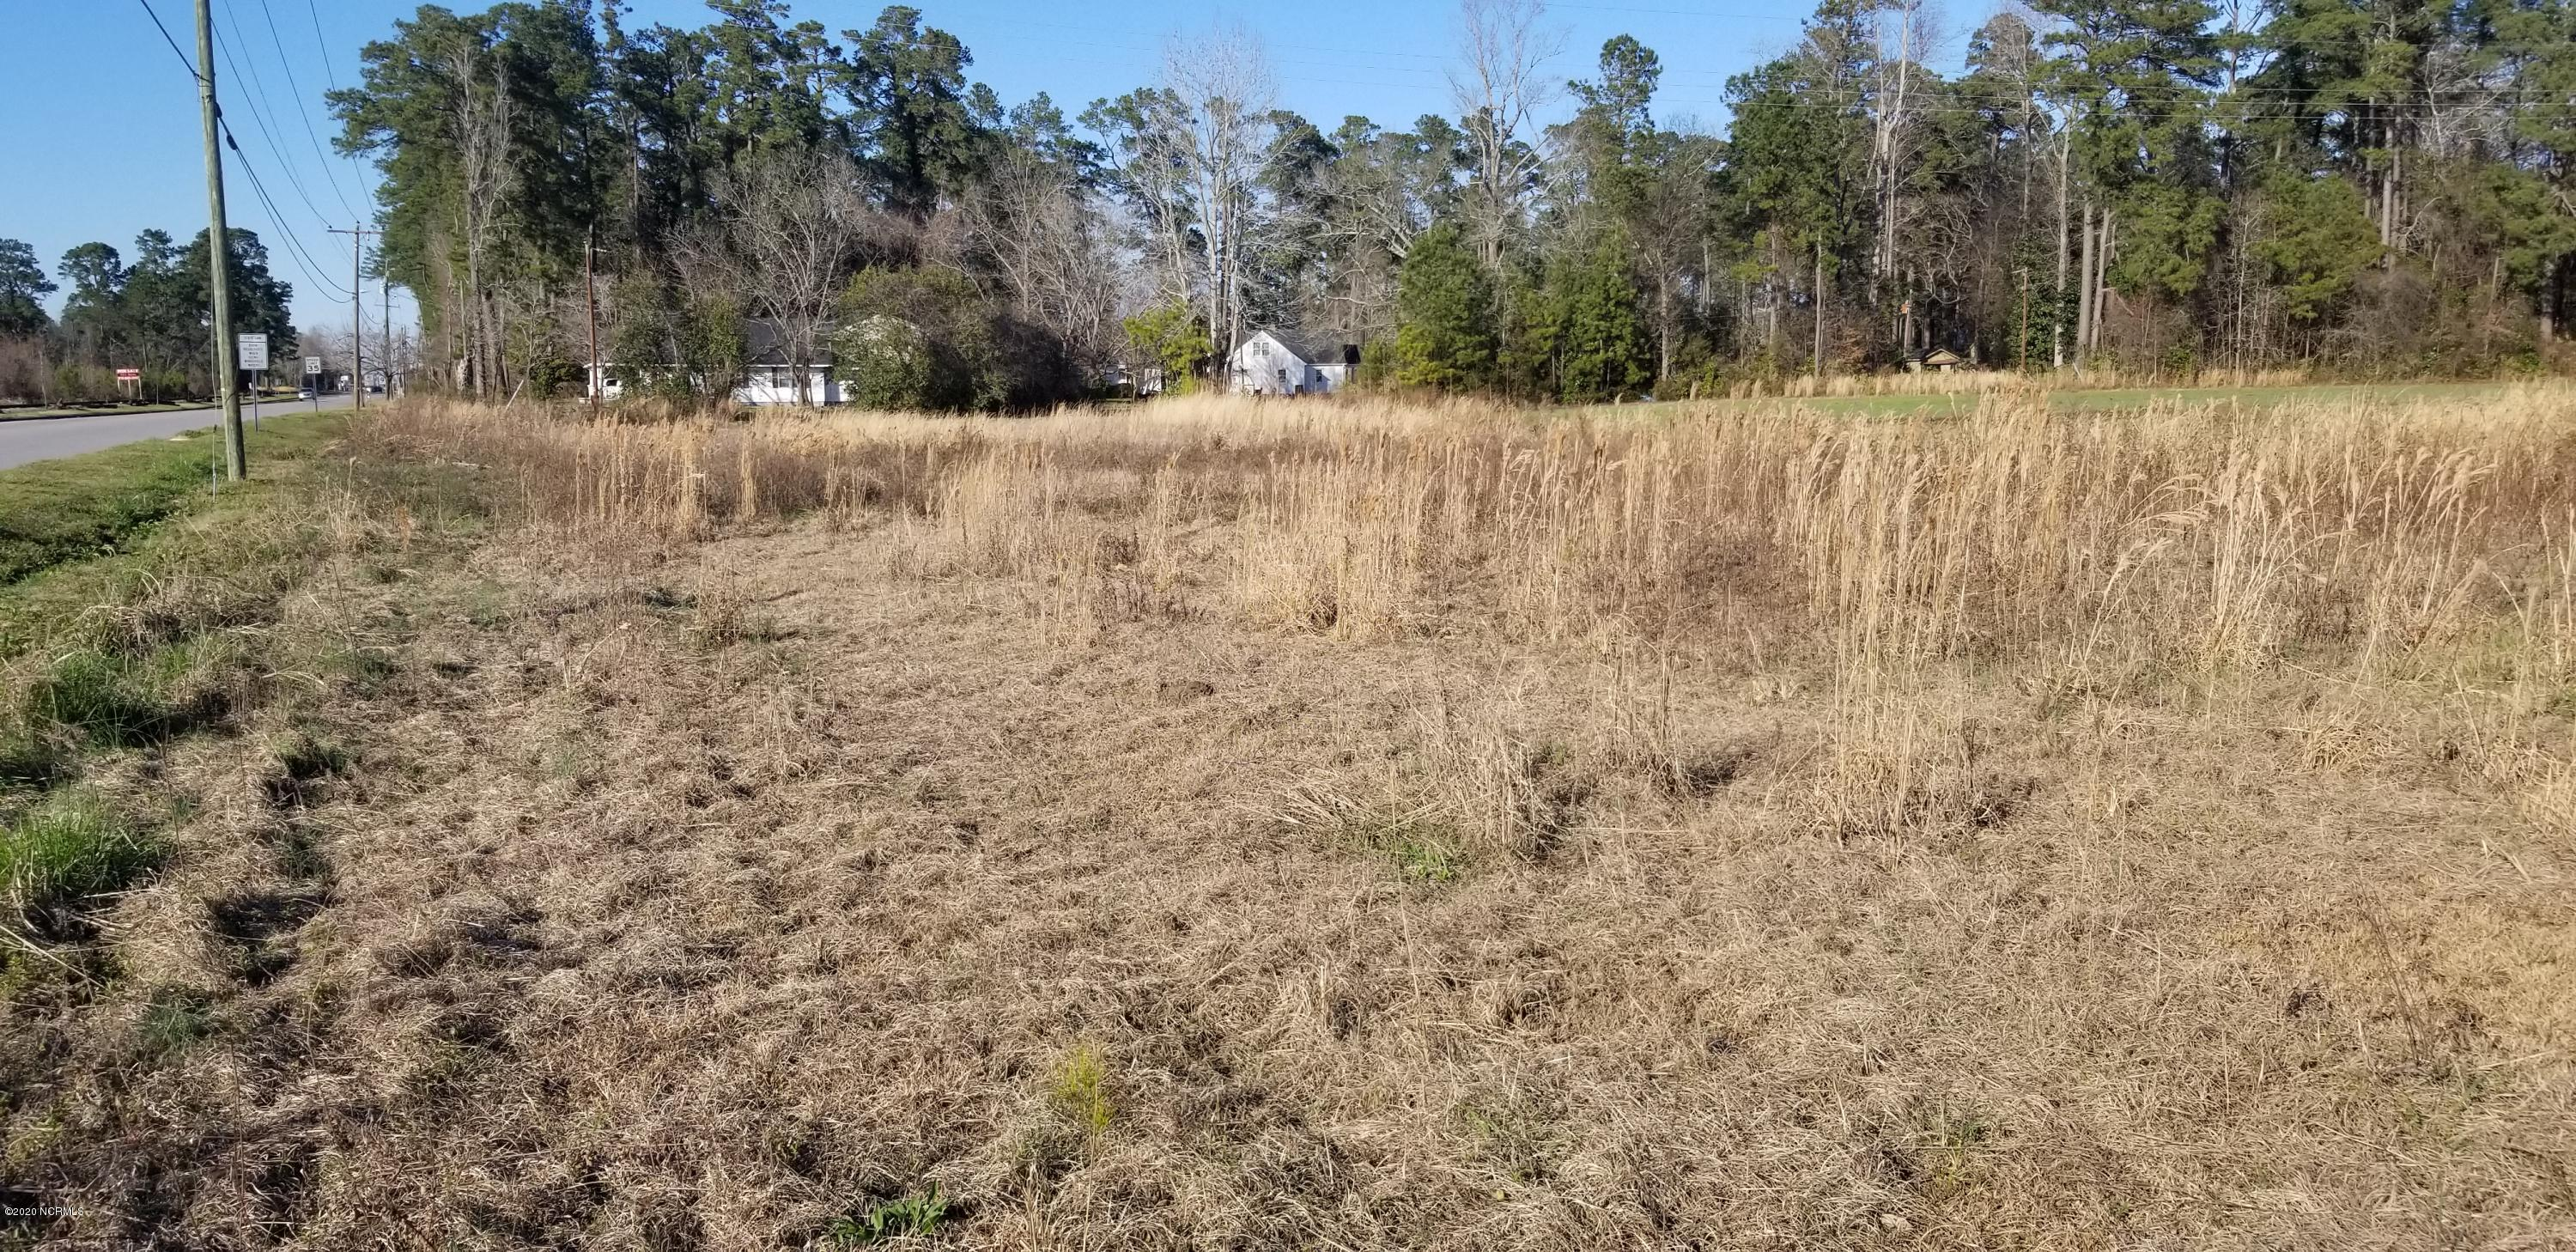 911 & 915 Hickman Road, Tabor City, North Carolina 28463, ,Residential land,For sale,Hickman,100210251